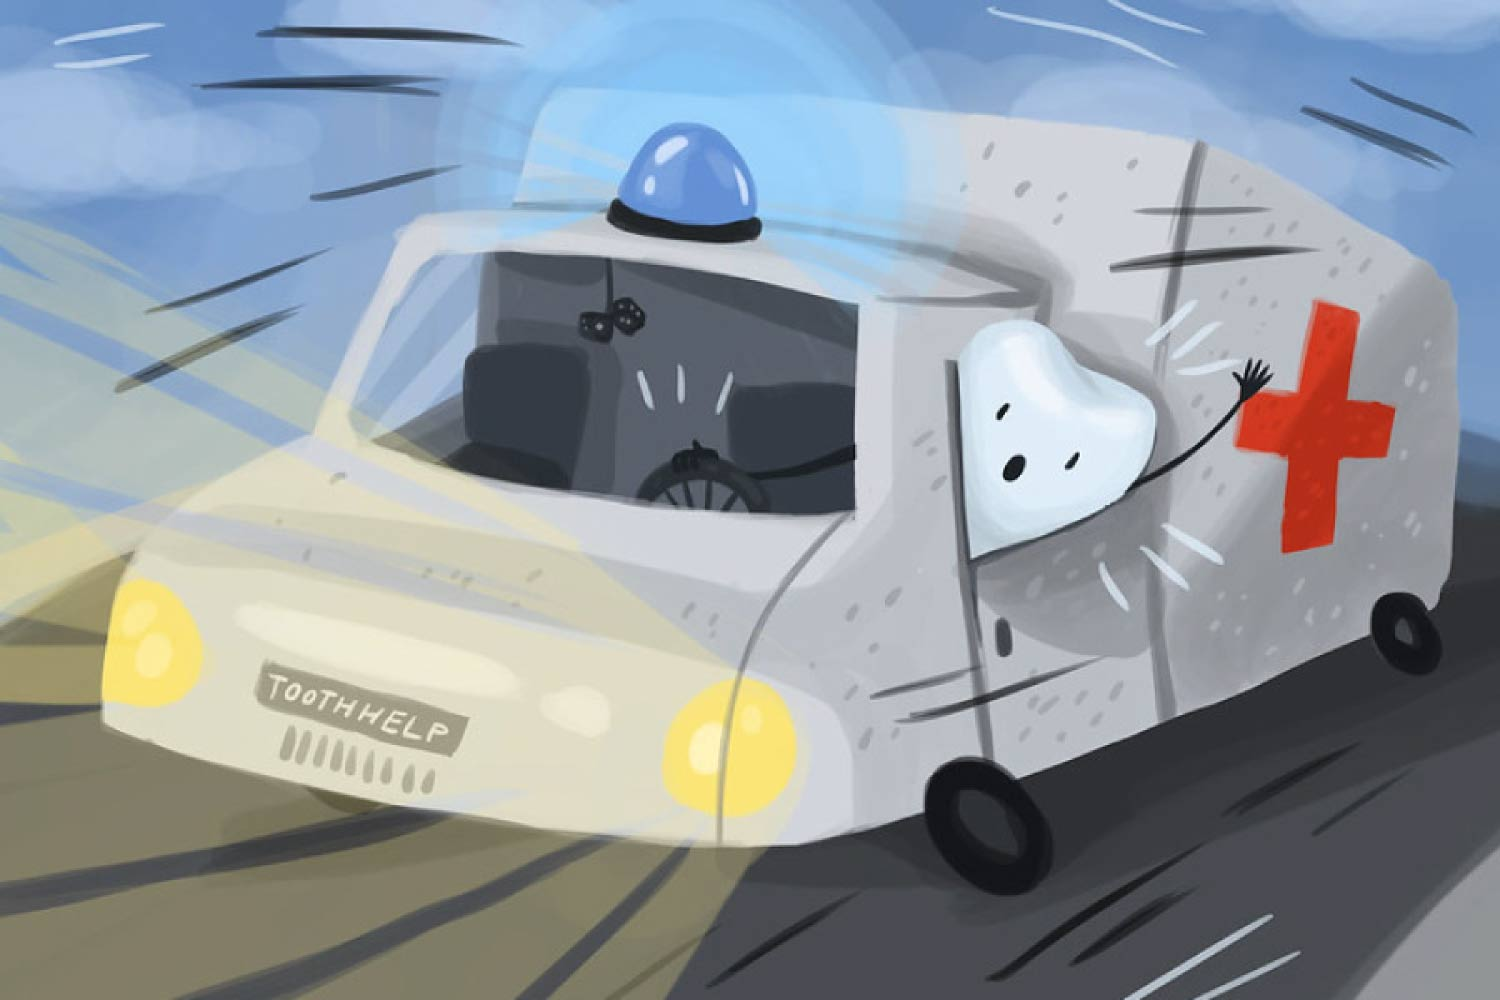 Cartoon ambulance being driven by a tooth.